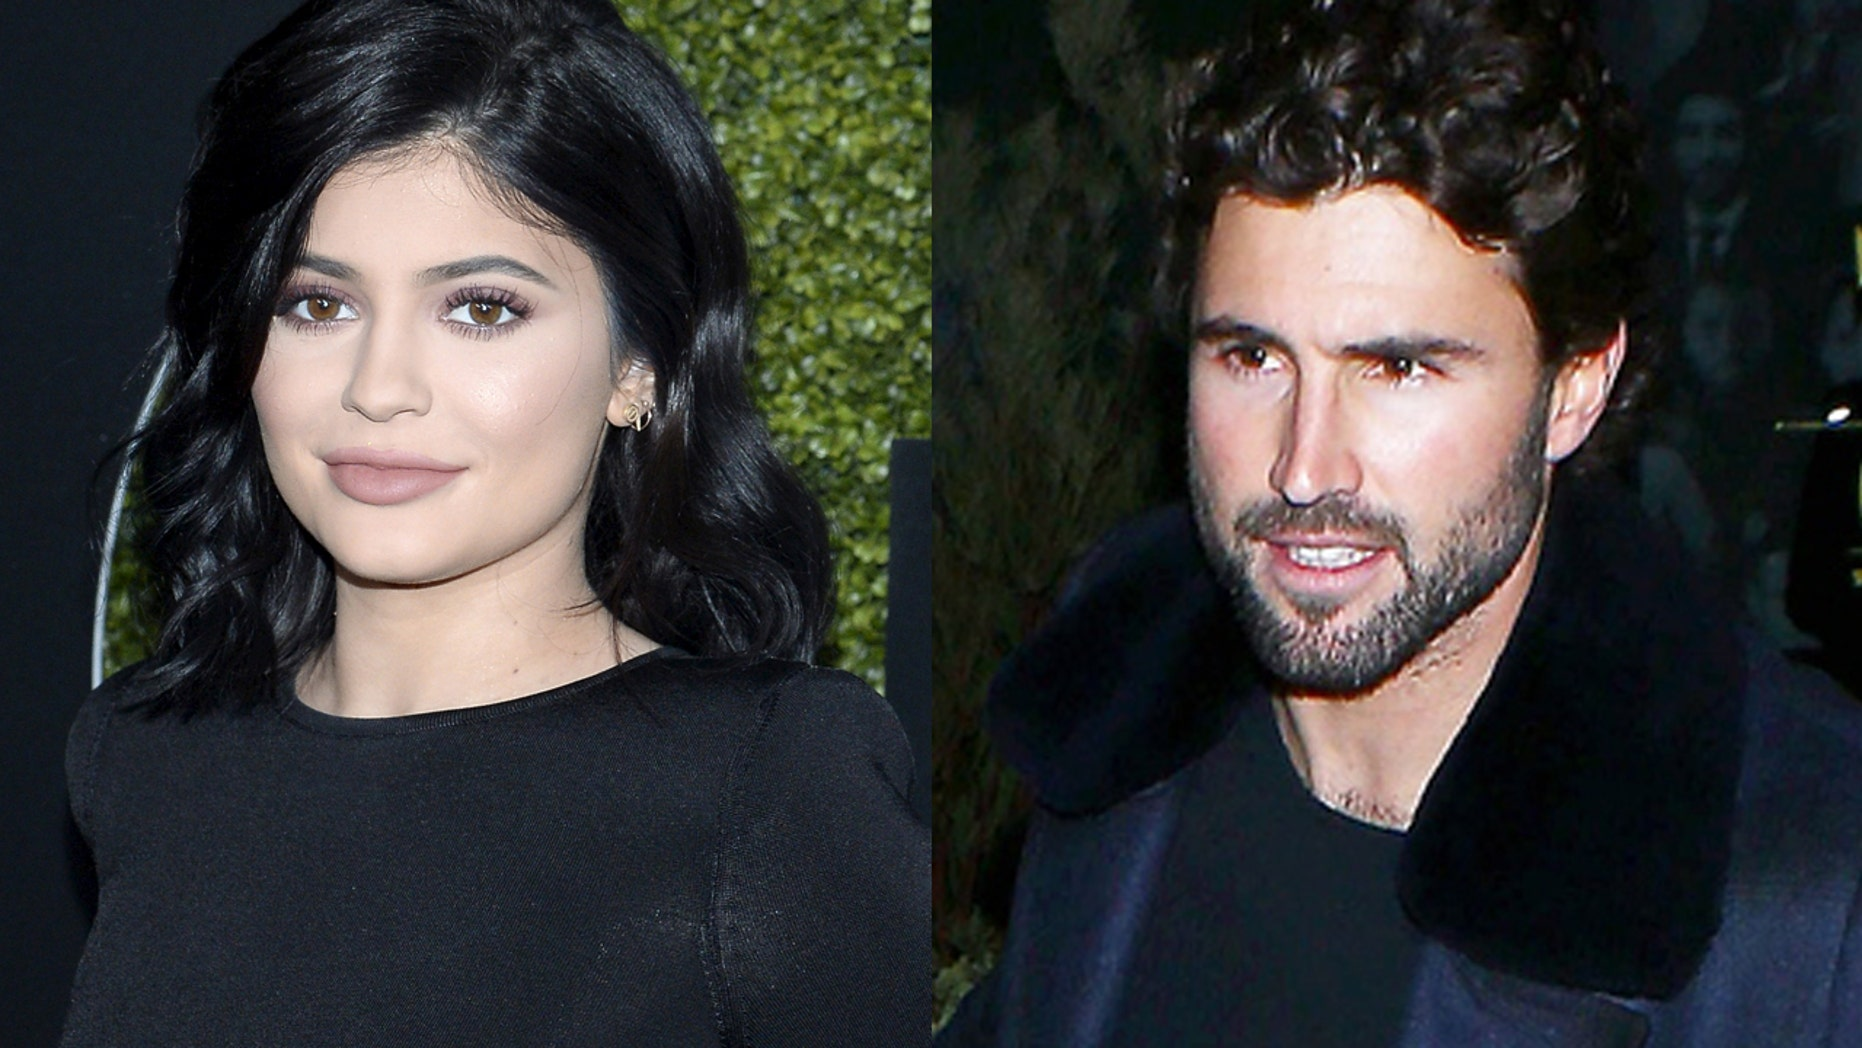 Brody Jenner reveals that he did not know about half-sister Kylie Jenner's pregnancy in new interview.